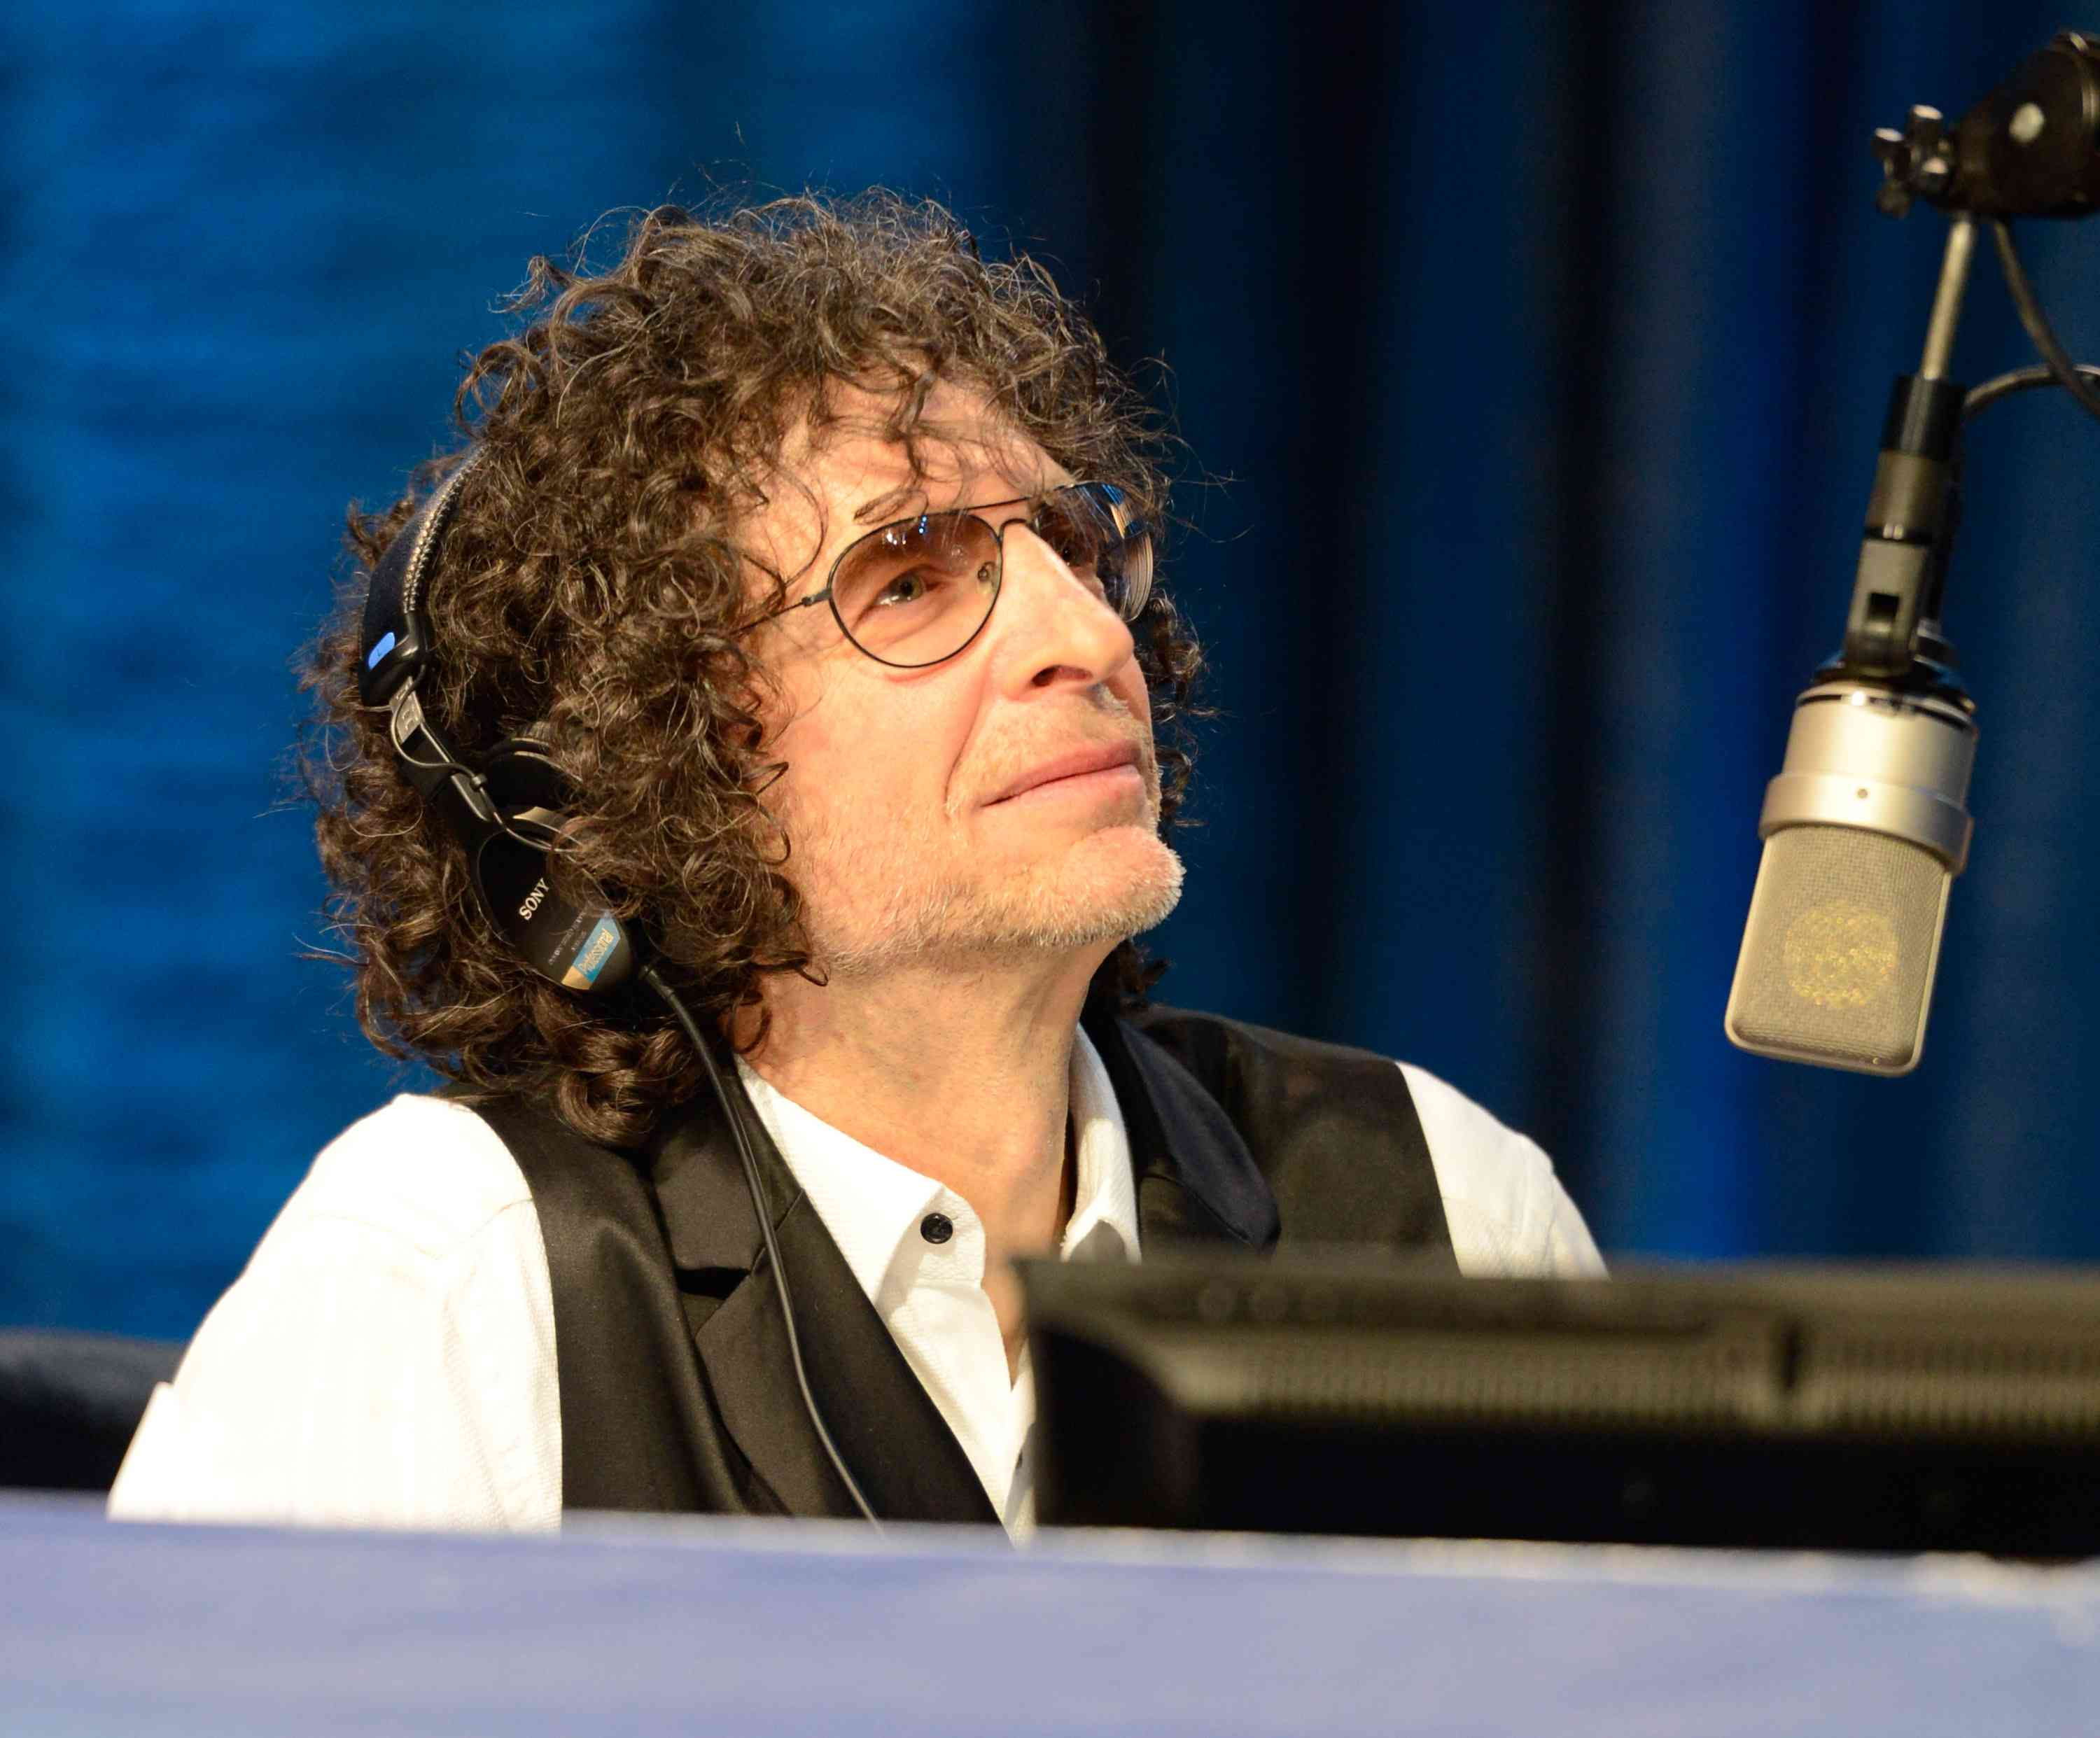 'Howard Stern's Birthday Bash' Presented By SiriusXM, Produced By Howard Stern Productions - Inside